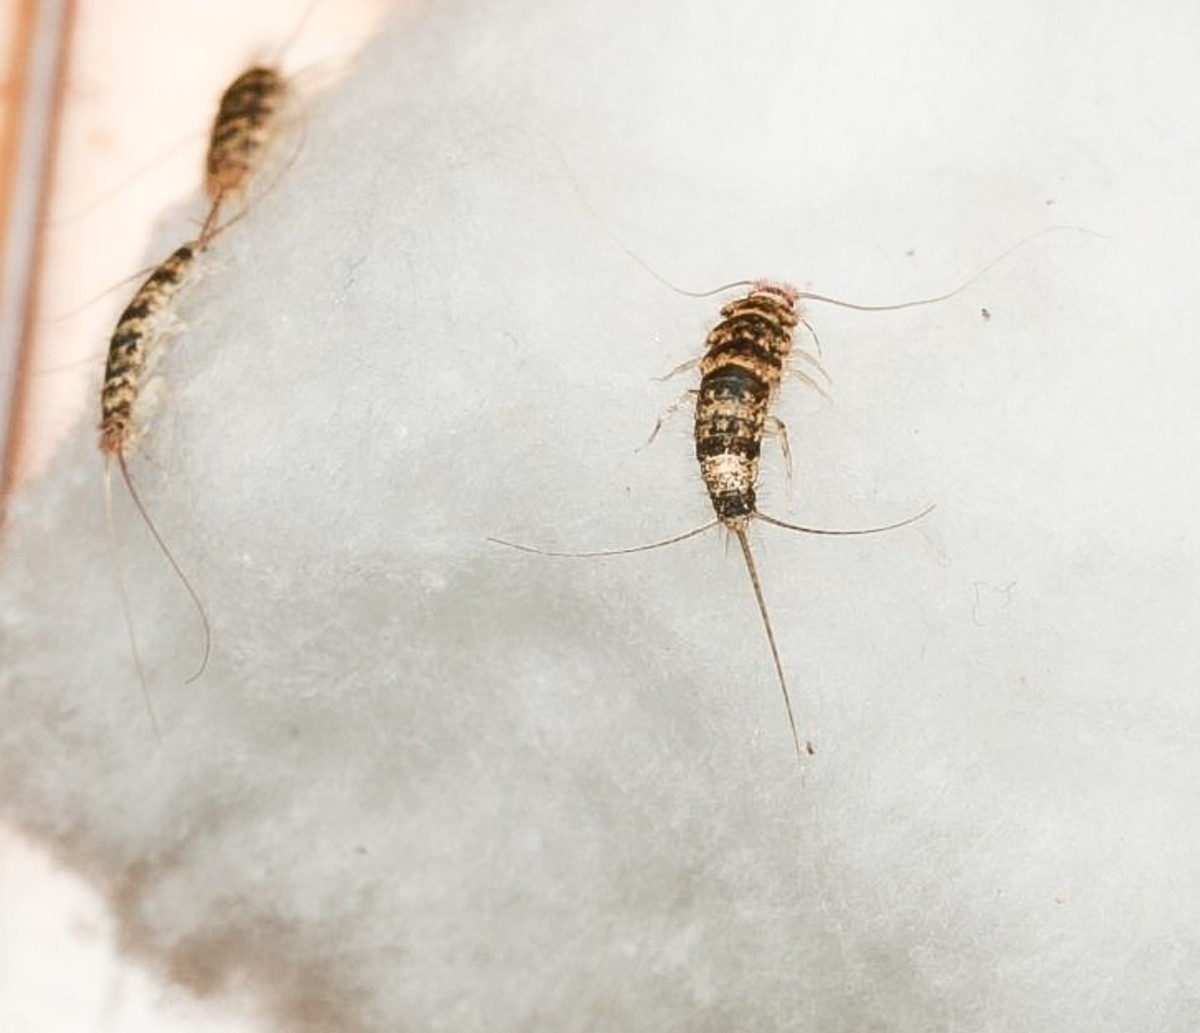 Silverfish: Life Cycle, Effects, and Pest Control | Dengarden